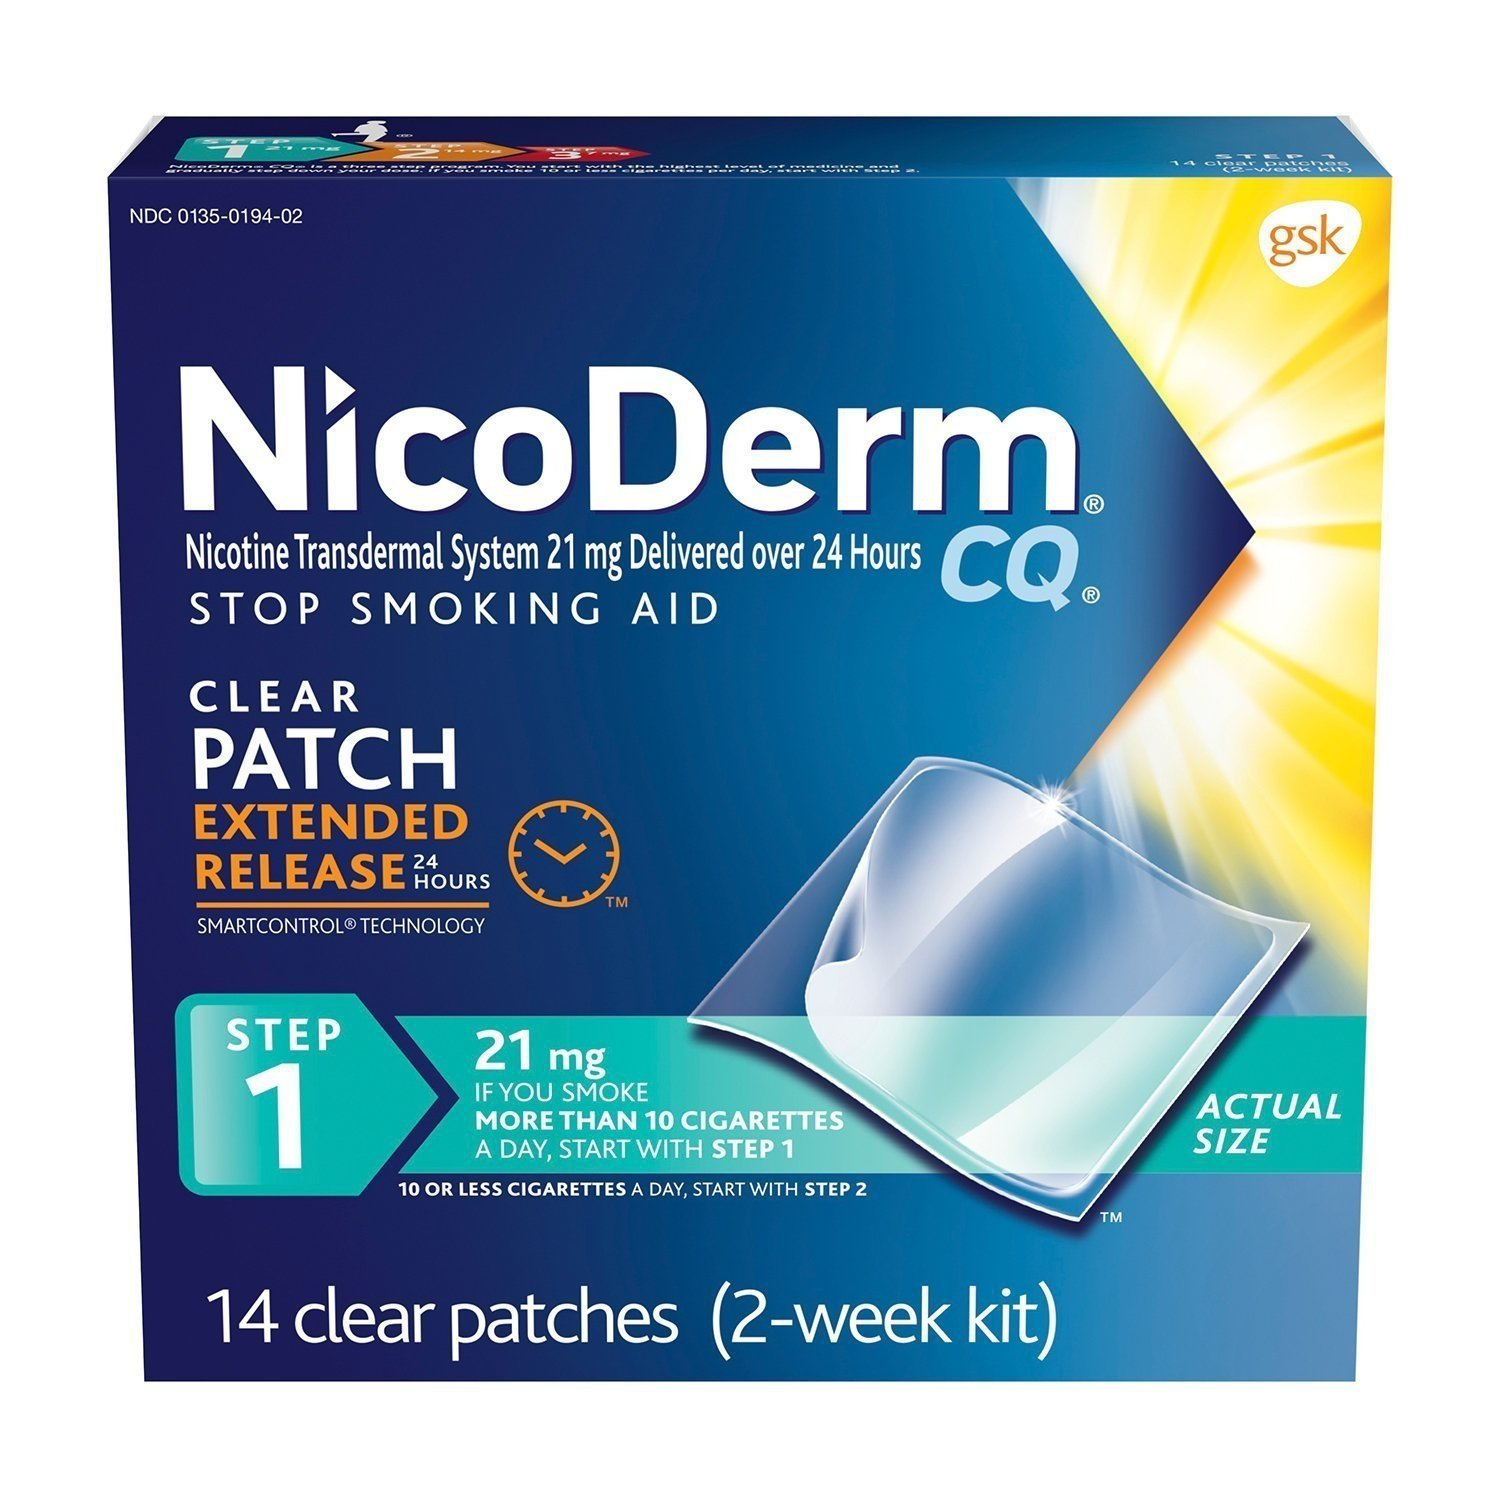 NicoDerm CQ Clear Patches, 21 mg, Step 1 - 14 ct, Pack of 2